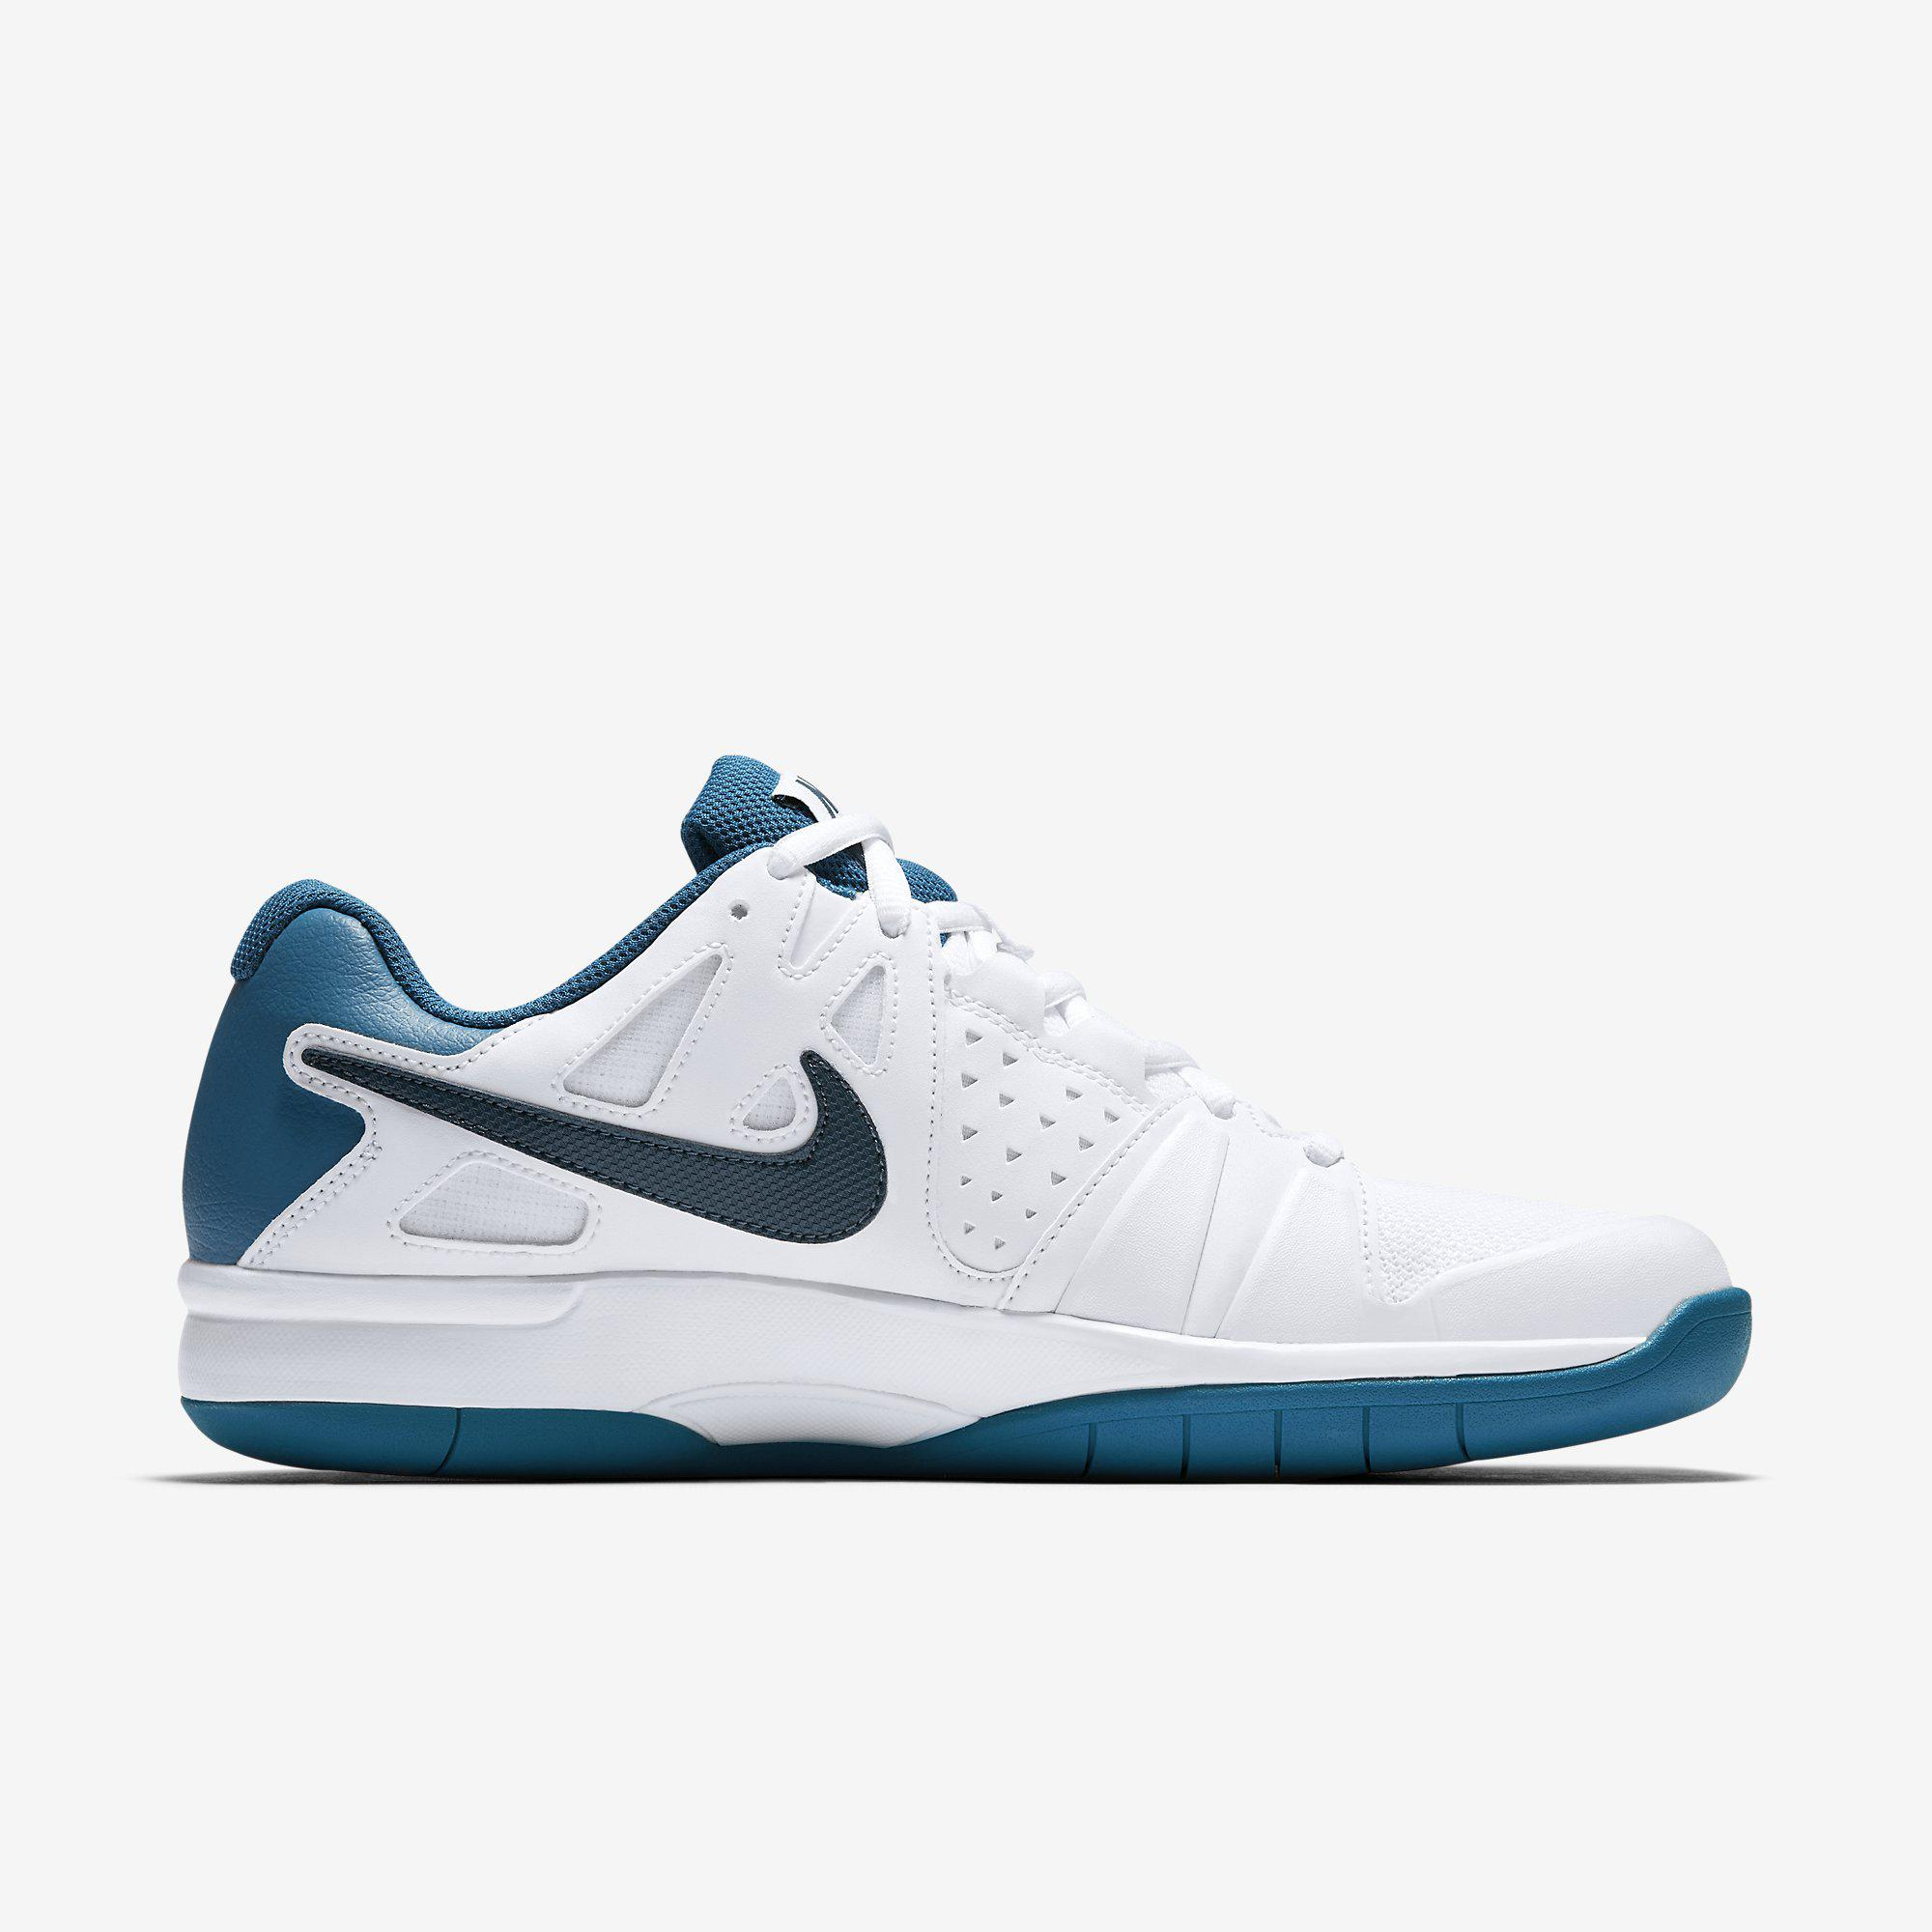 super popular ac132 eb8b2 Nike Mens Air Vapor Advantage Carpet Tennis Shoes - White Blue